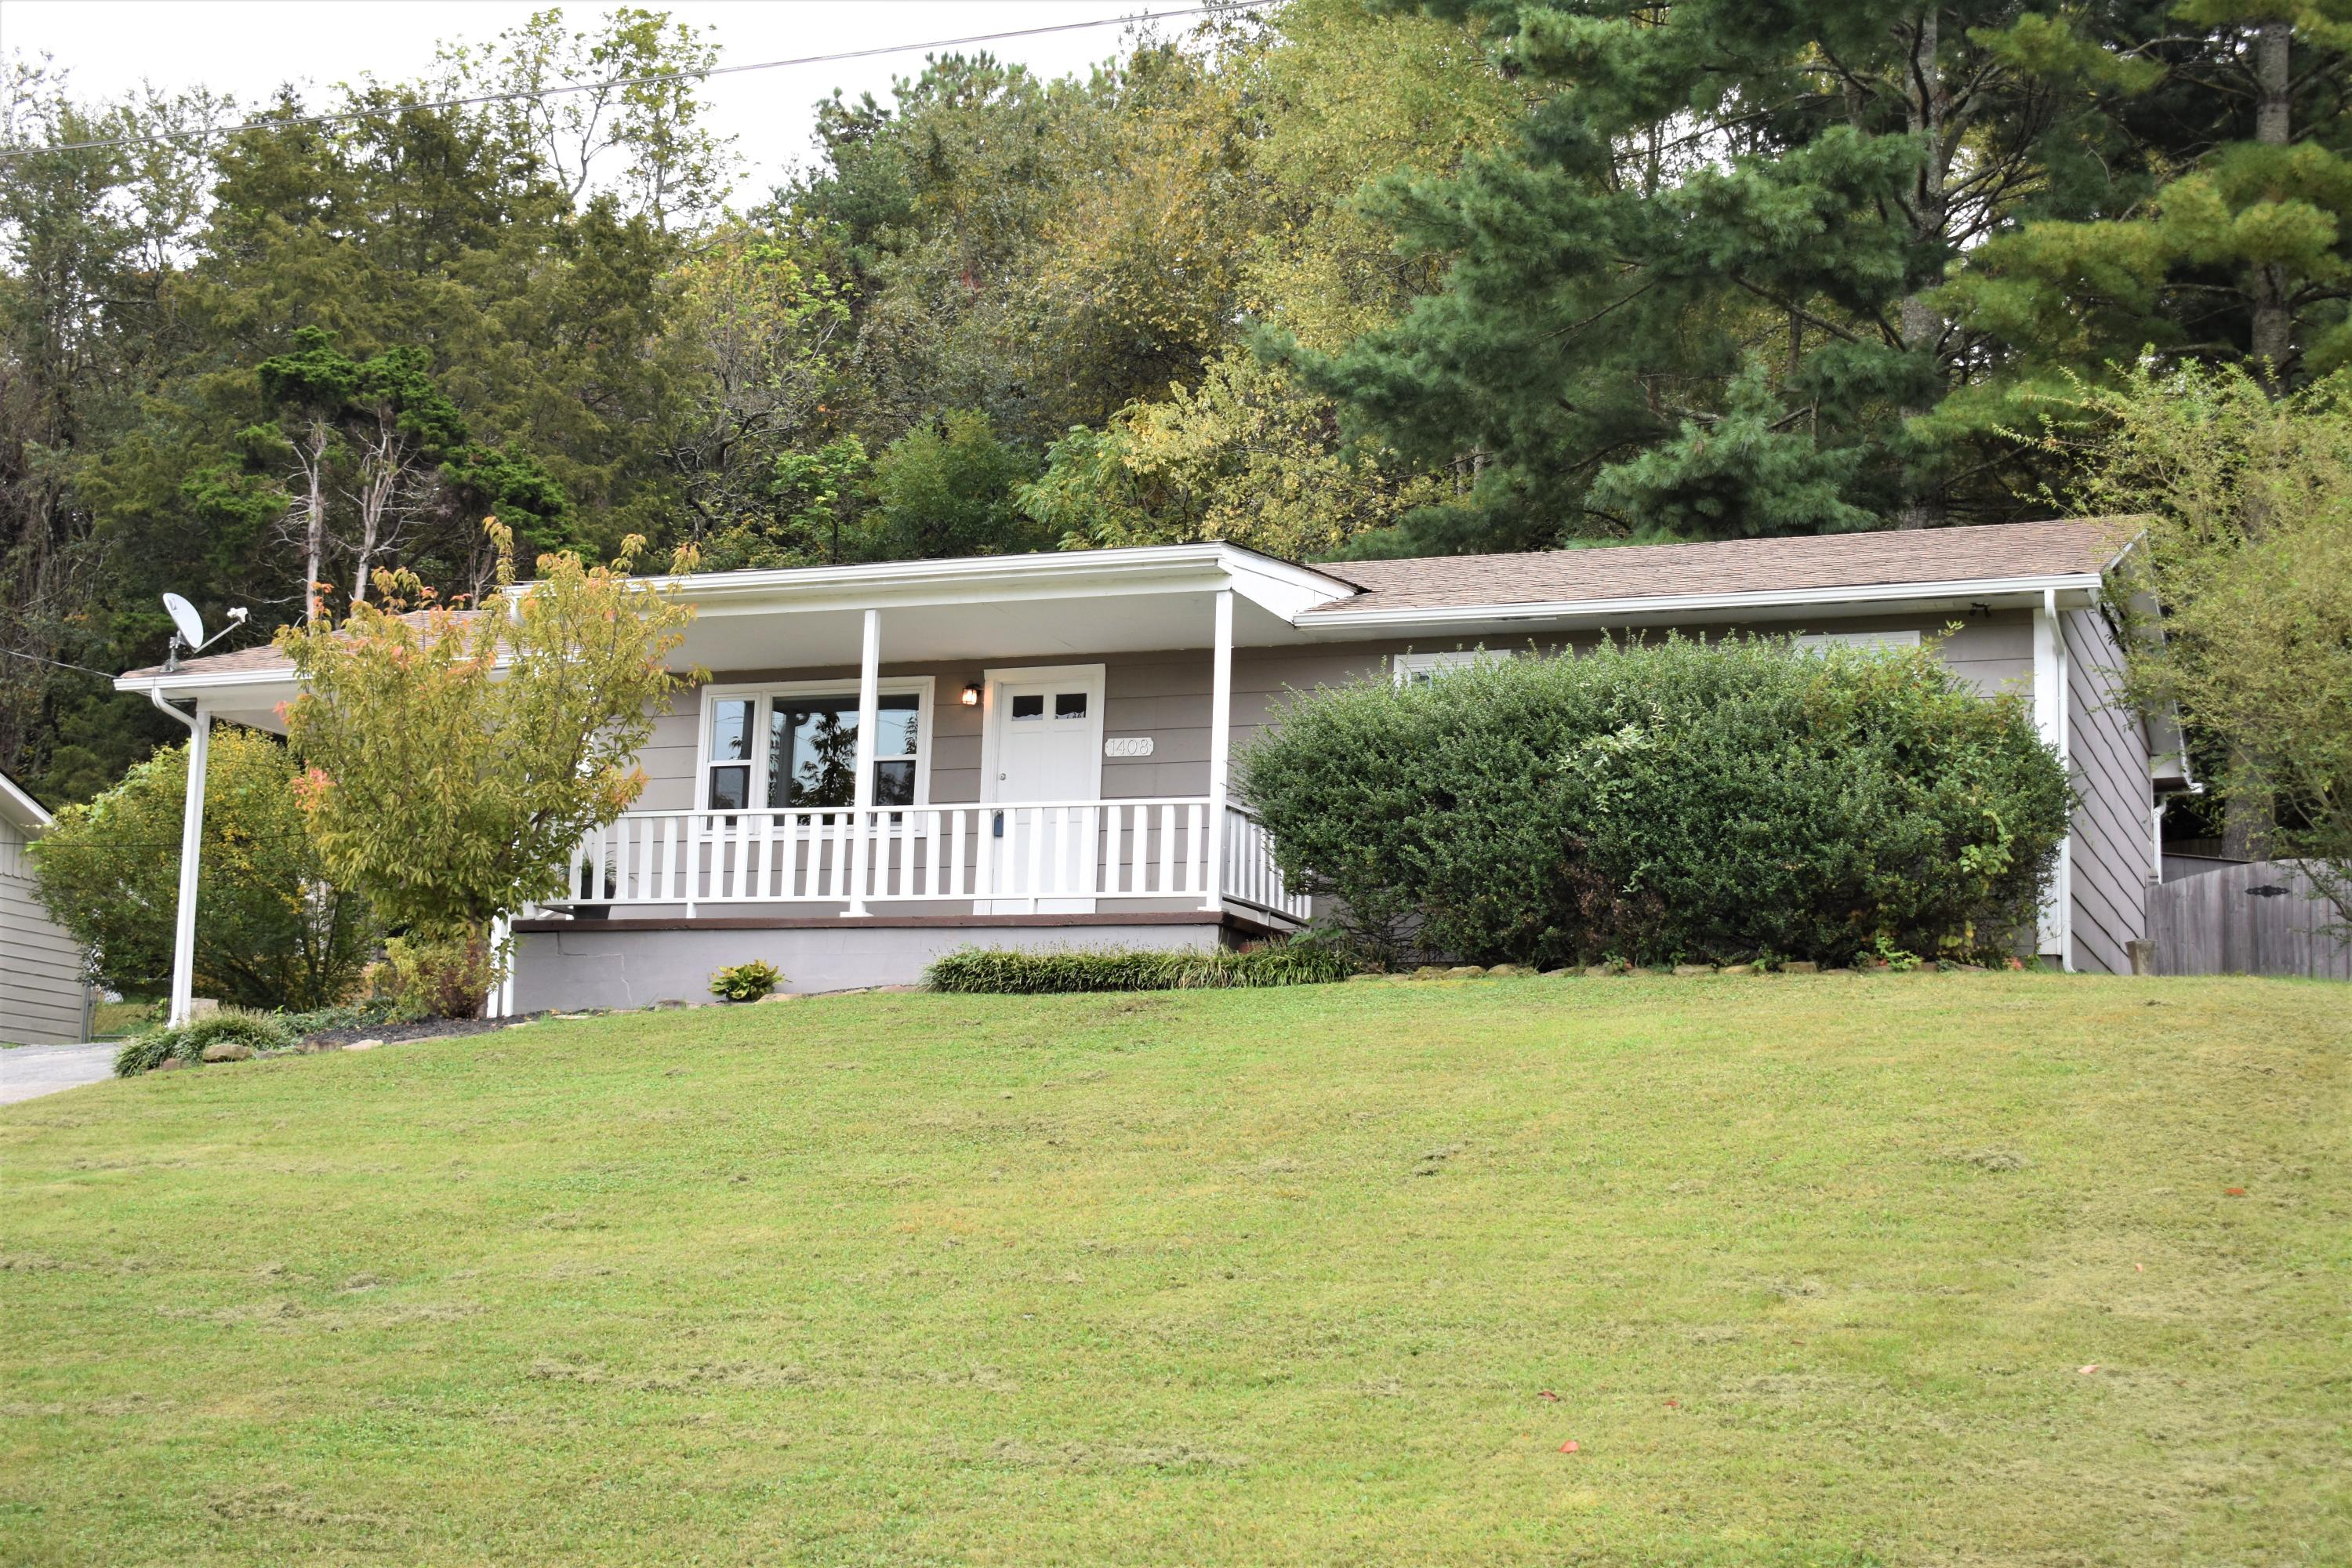 1408 Hickey Rd, Knoxville, Tennessee 37932, 3 Bedrooms Bedrooms, ,2 BathroomsBathrooms,Single Family,For Sale,Hickey,1128792